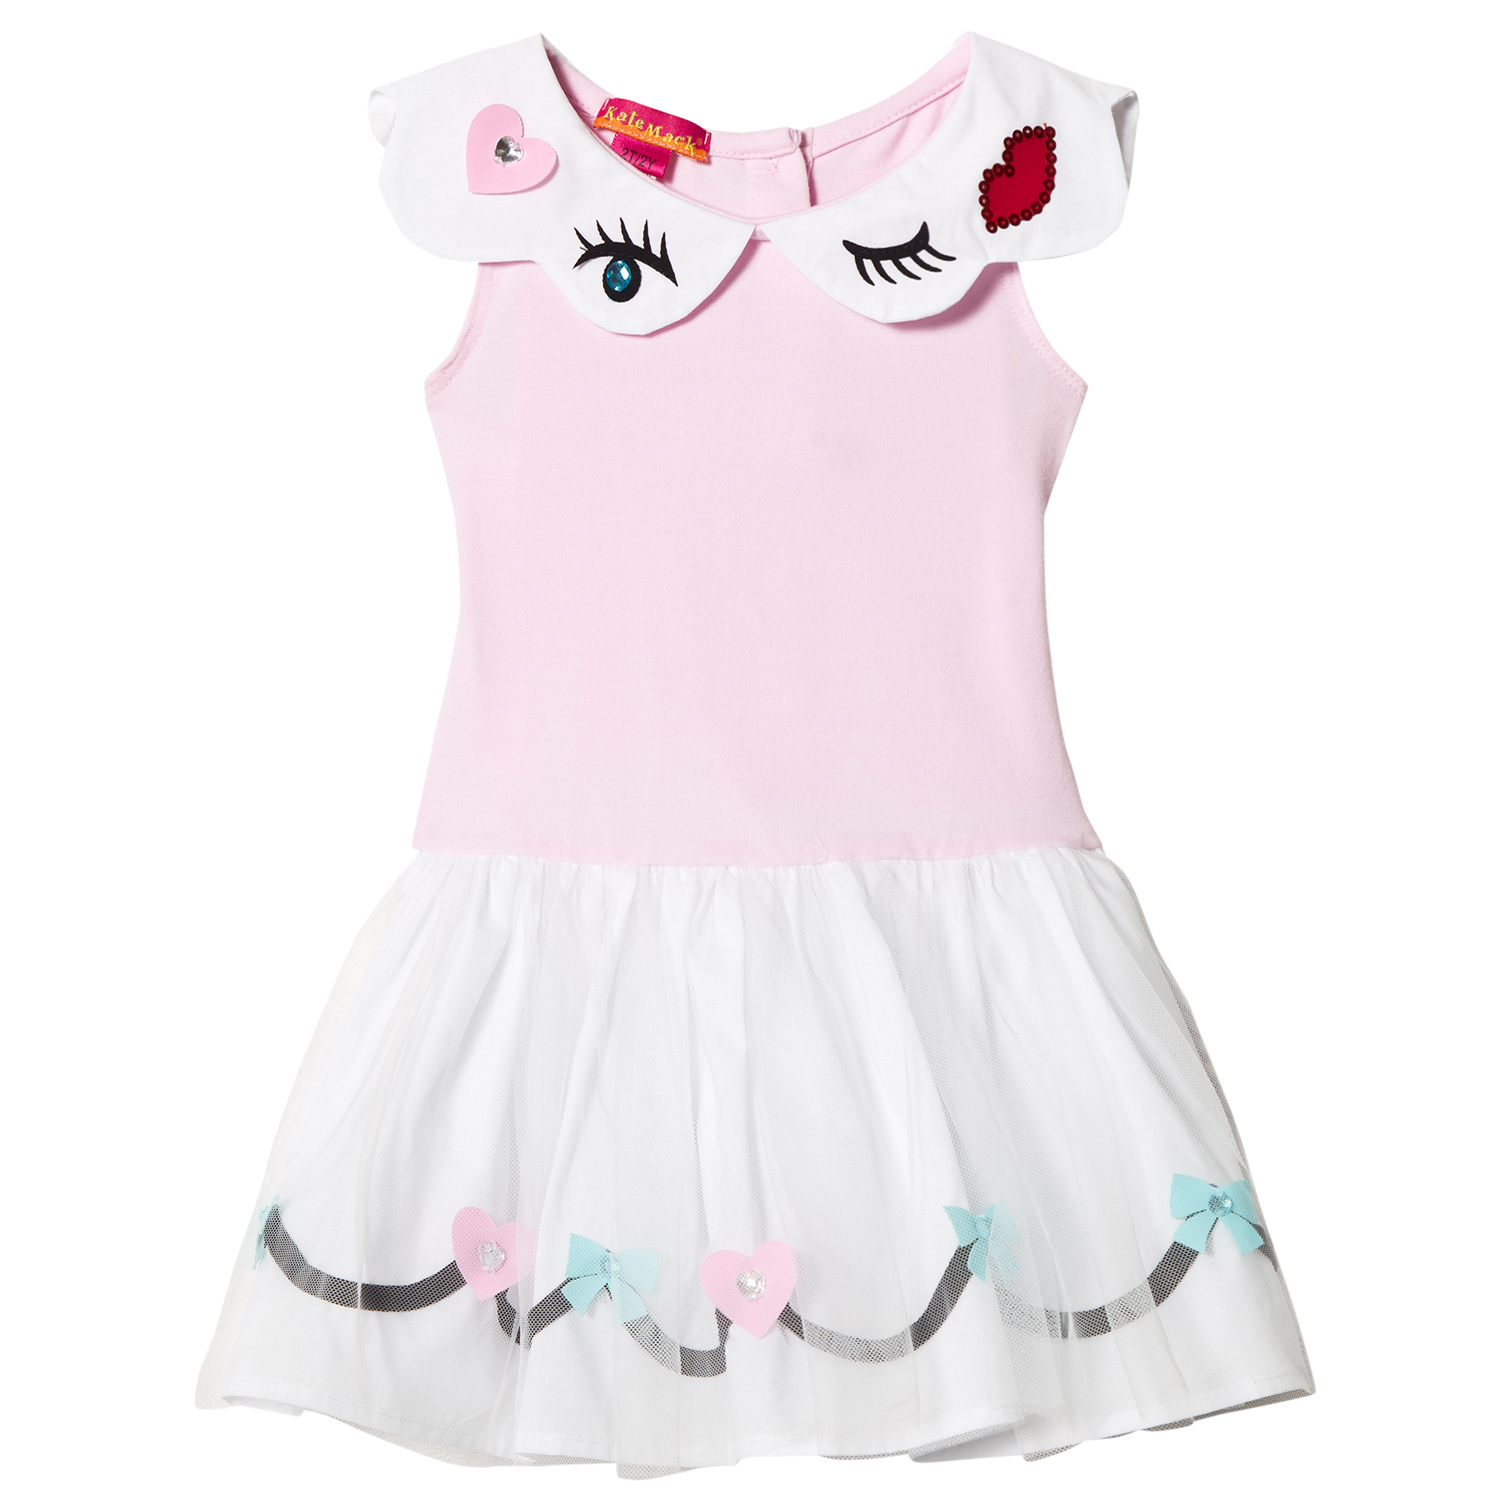 Pretty Easter Dresses For Toddlers And Little Girls – Reviews - Adorable Children's Clothing & Accessories